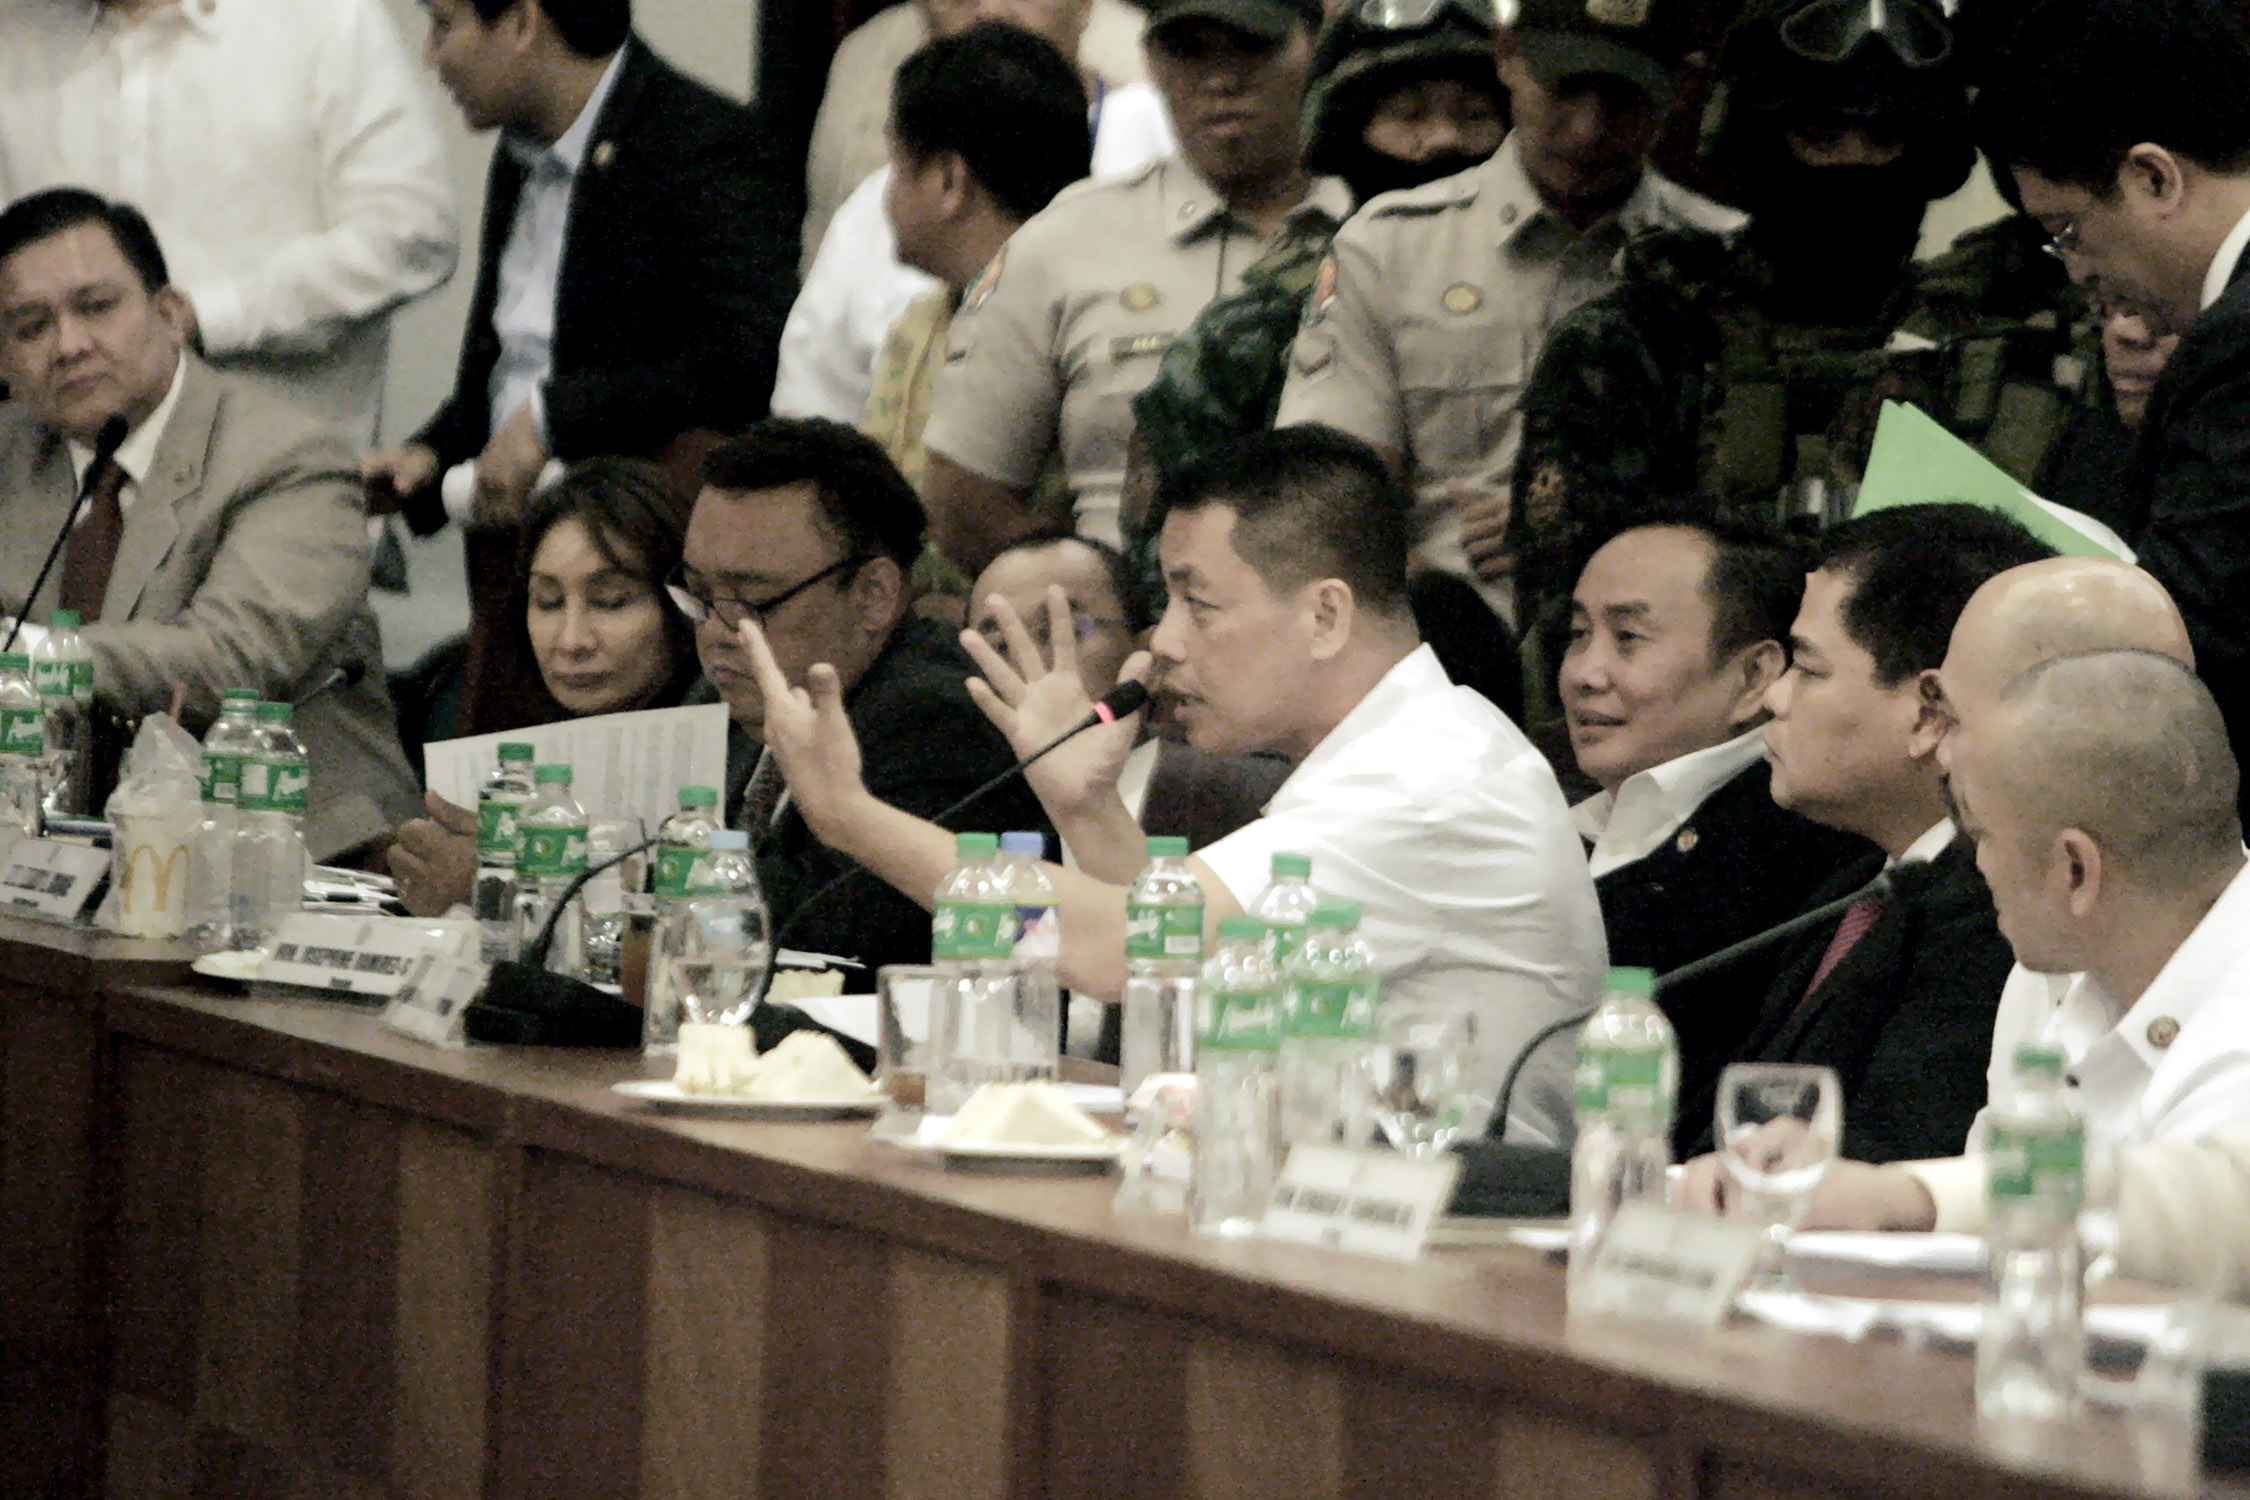 Convicted drug lord Herbert Colangco (4th from left) gestures with both hands to stress a point in his testimony against Senator Leila de Lima during the hearing of the House of Representatives Justice Committee on the proliferation of drug trade inside the New Bilibid Prison on Tuesday (Sept. 20, 2016). He claimed that De Lima received PHP3 million a month since October 2013 to allow illegal transactions inside the NBP. (Photo: Oliver Marquez/PNA)